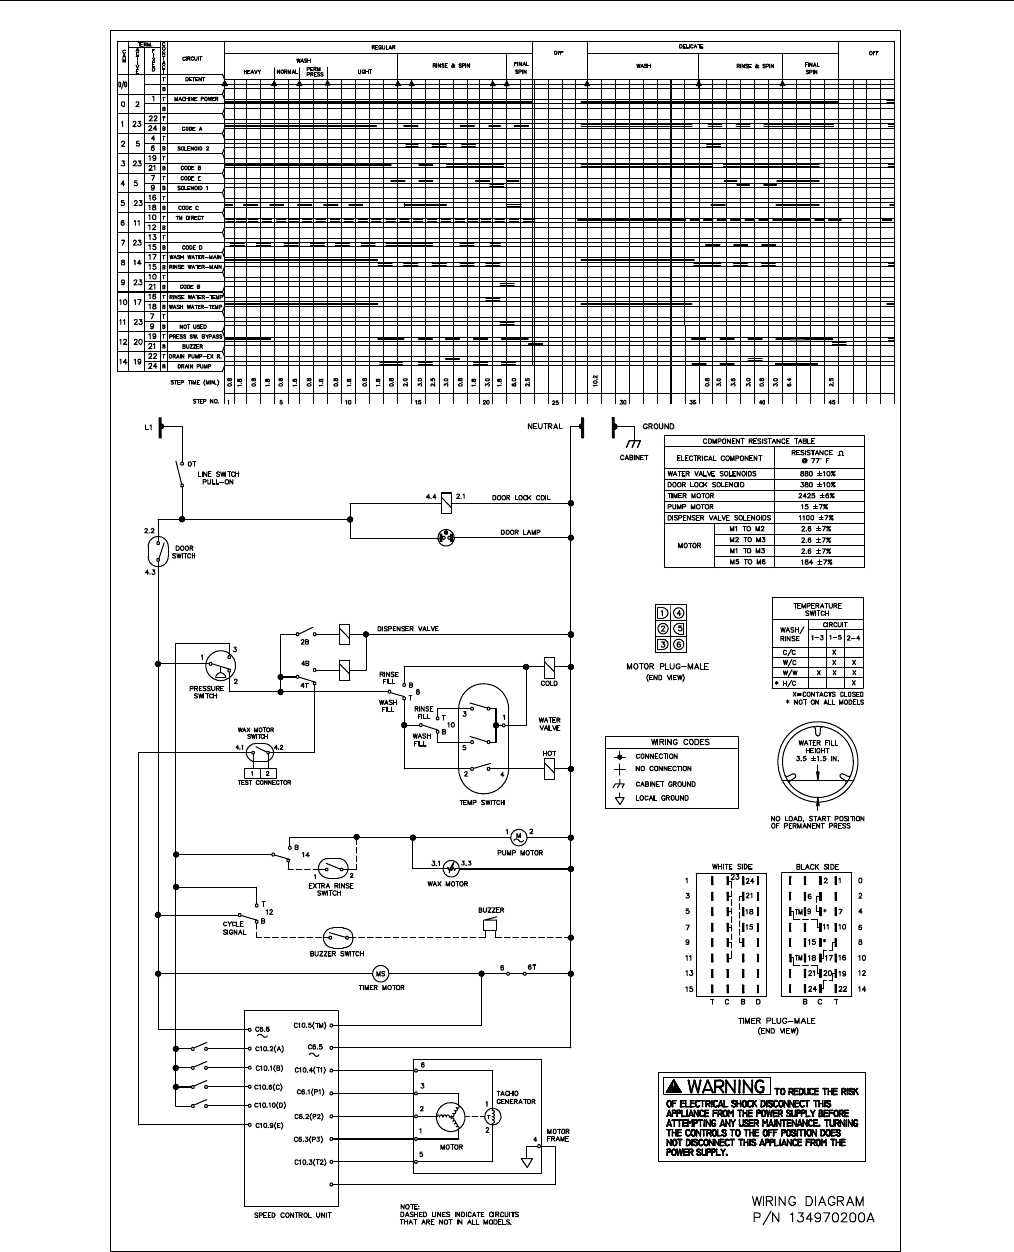 Page 8 of Electrolux Washer WTF330HS0 User Guide